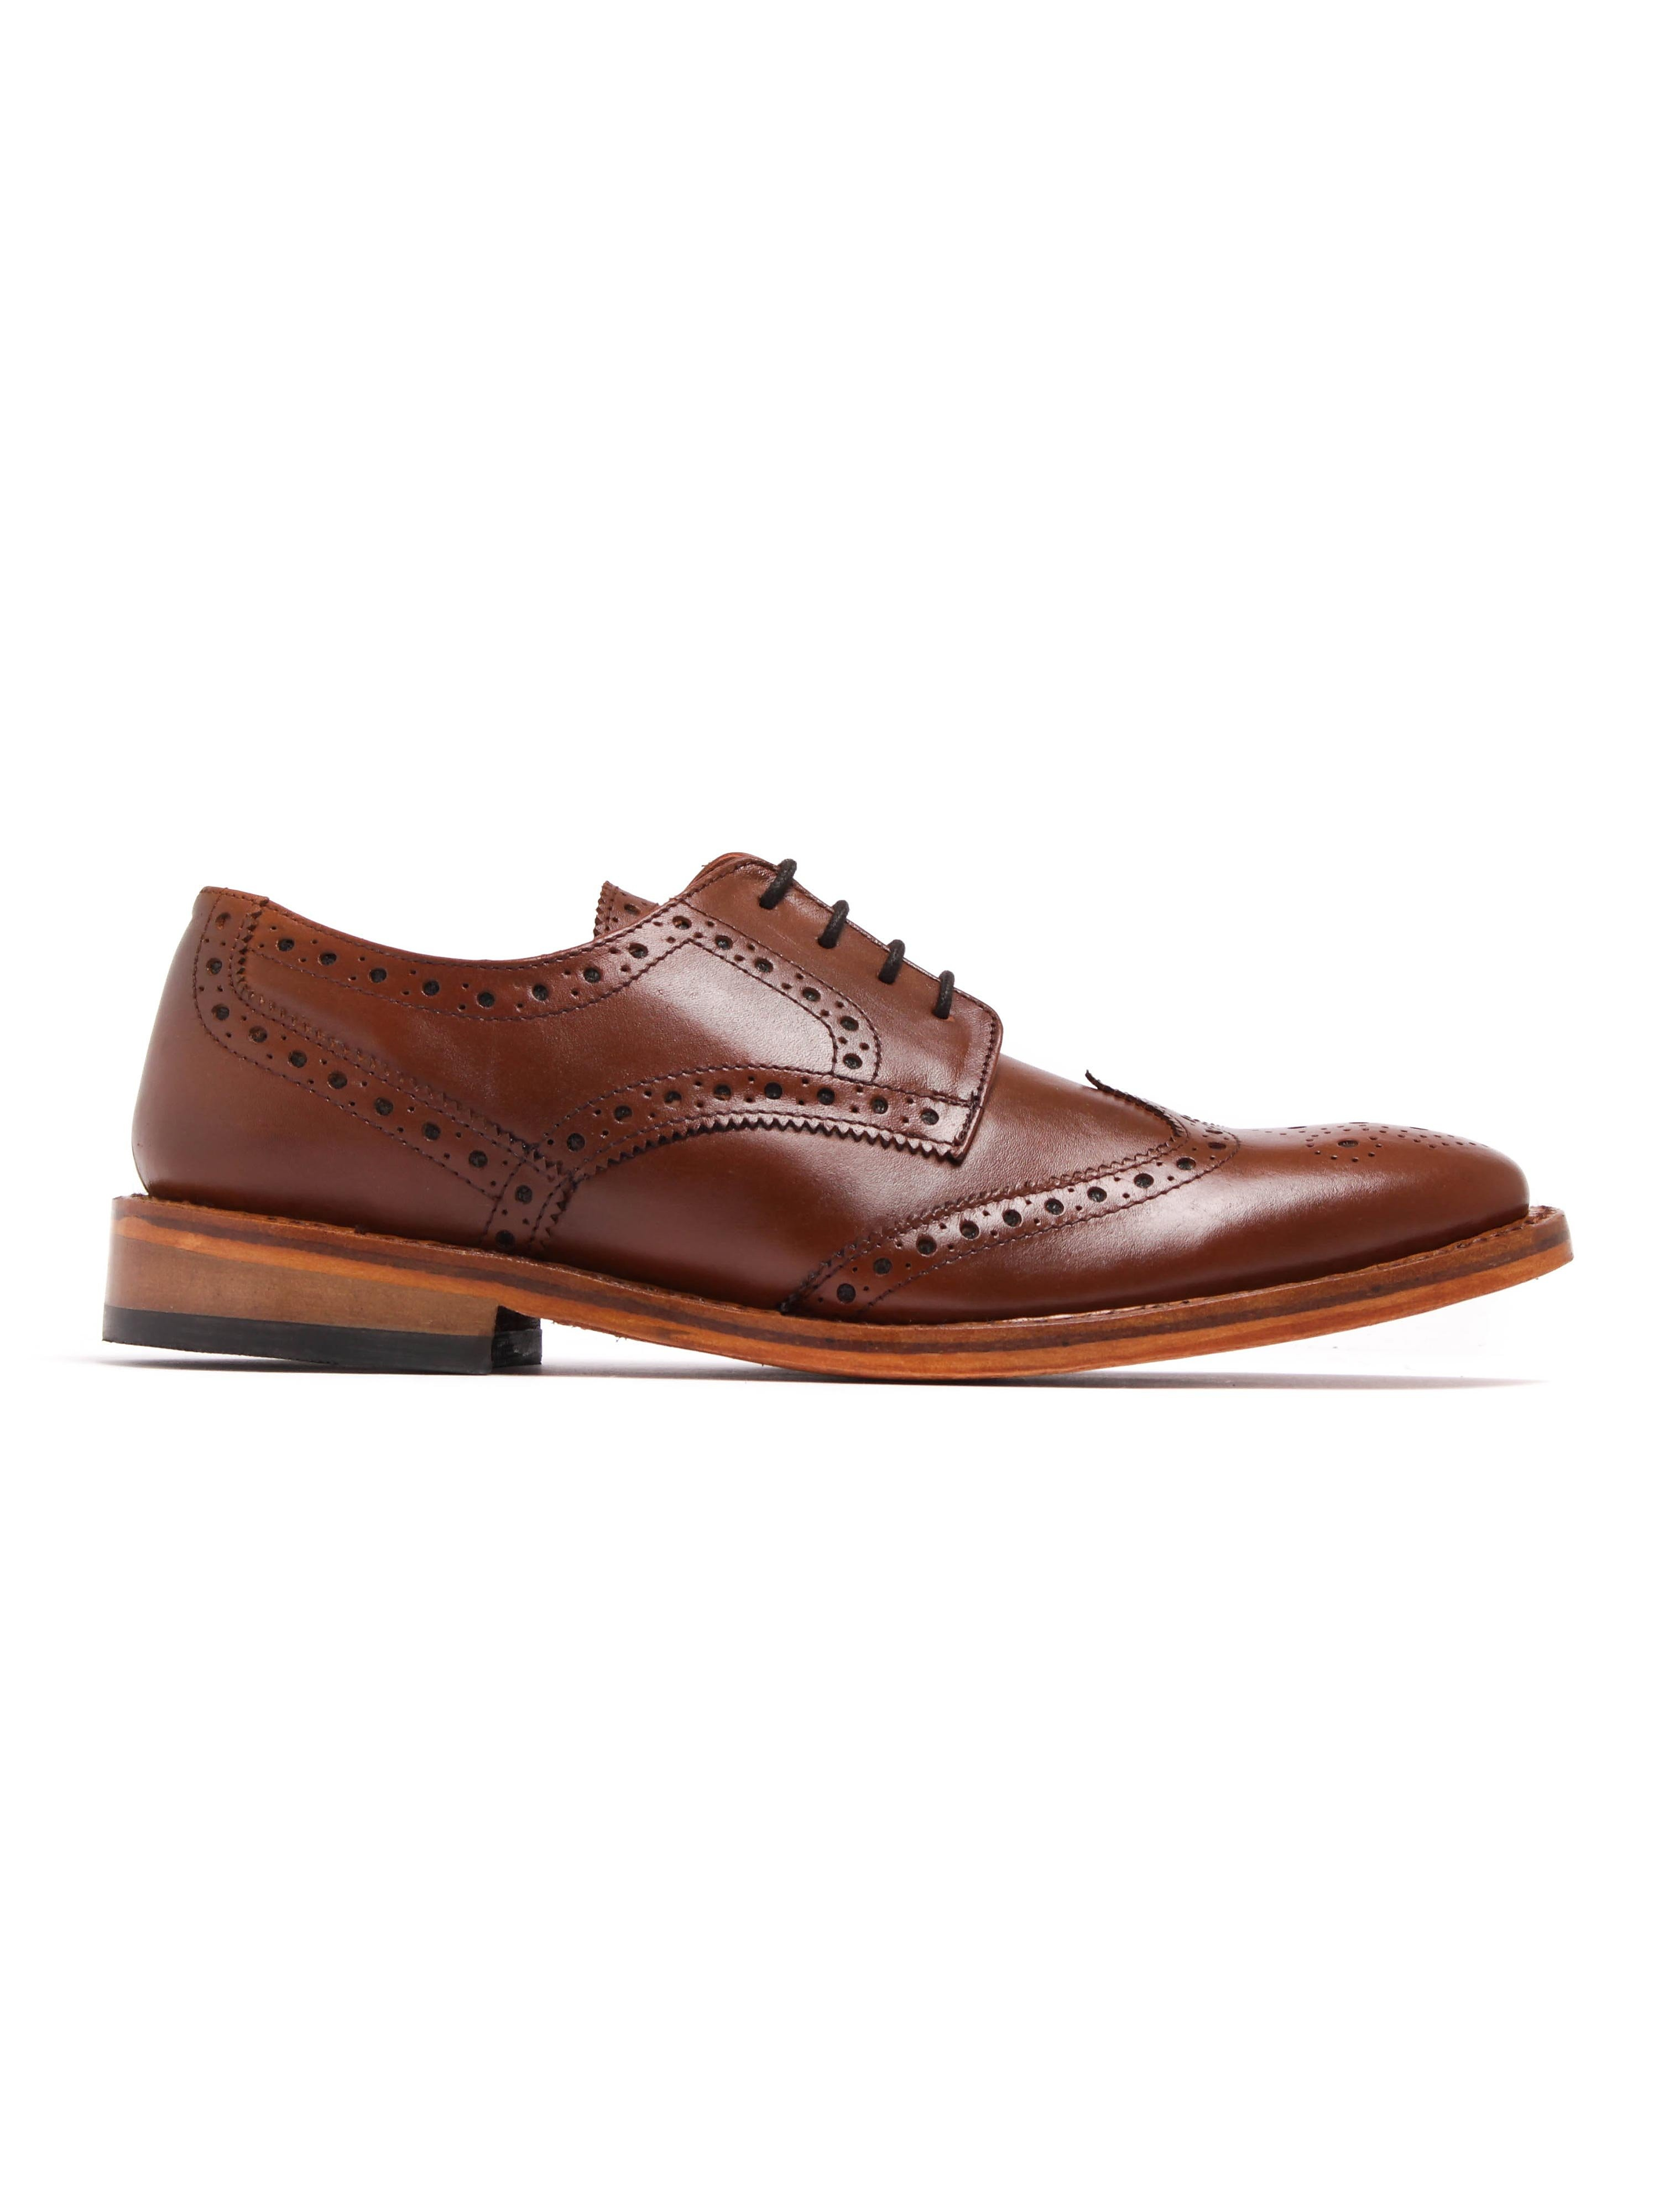 Russell Thomas Mens Surrey Antique Brown Leather Brogues